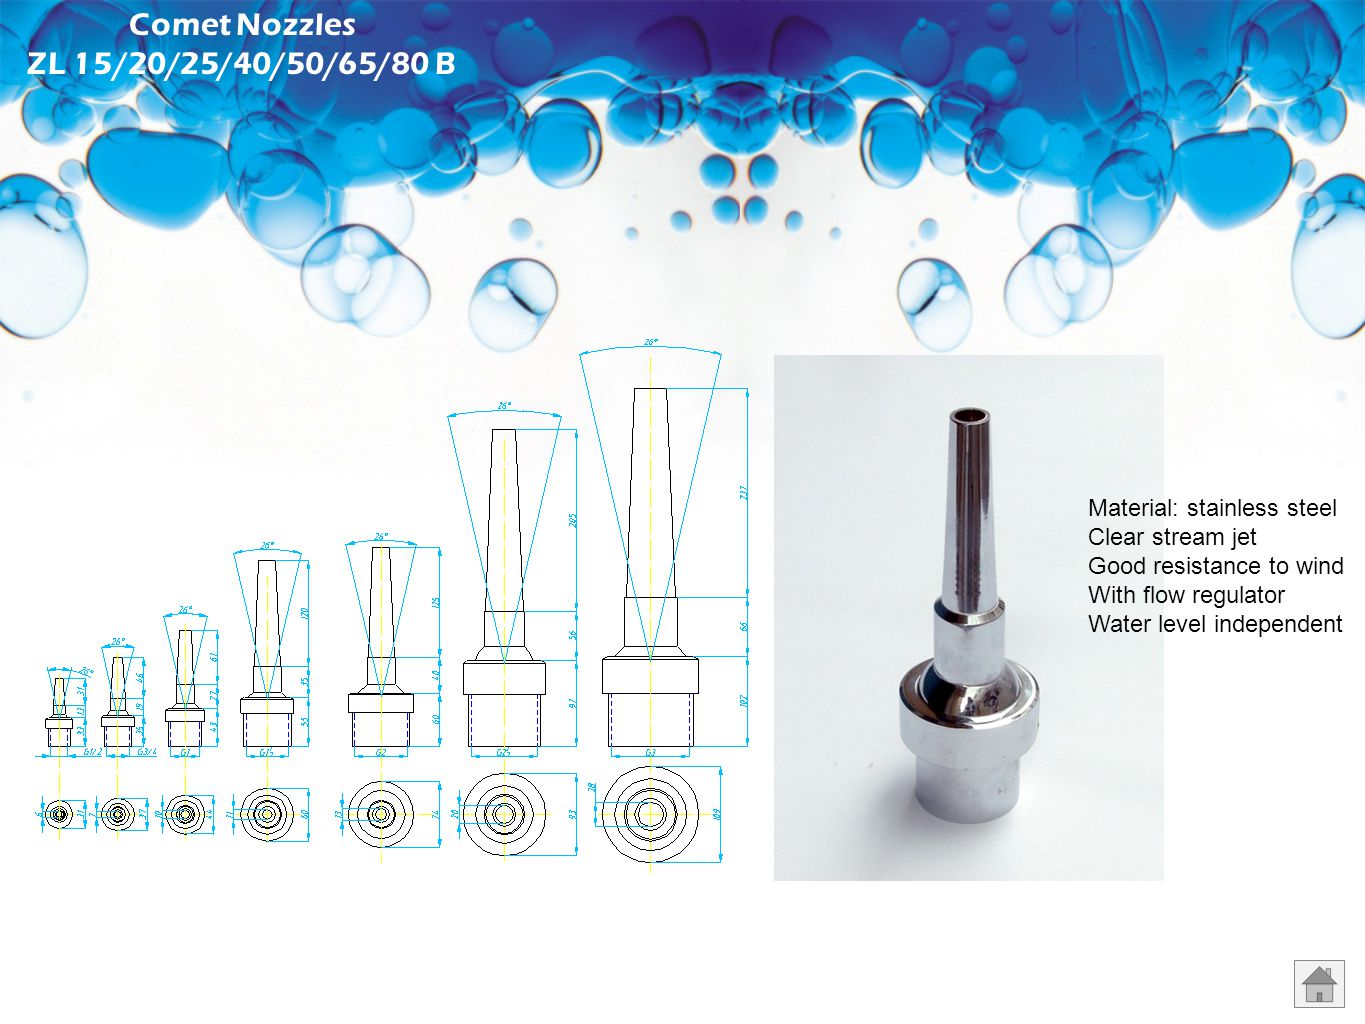 Foam Nozzles Material: chromed plated bronze Foamy effect Good resistance to wind Water saving Water level dependent